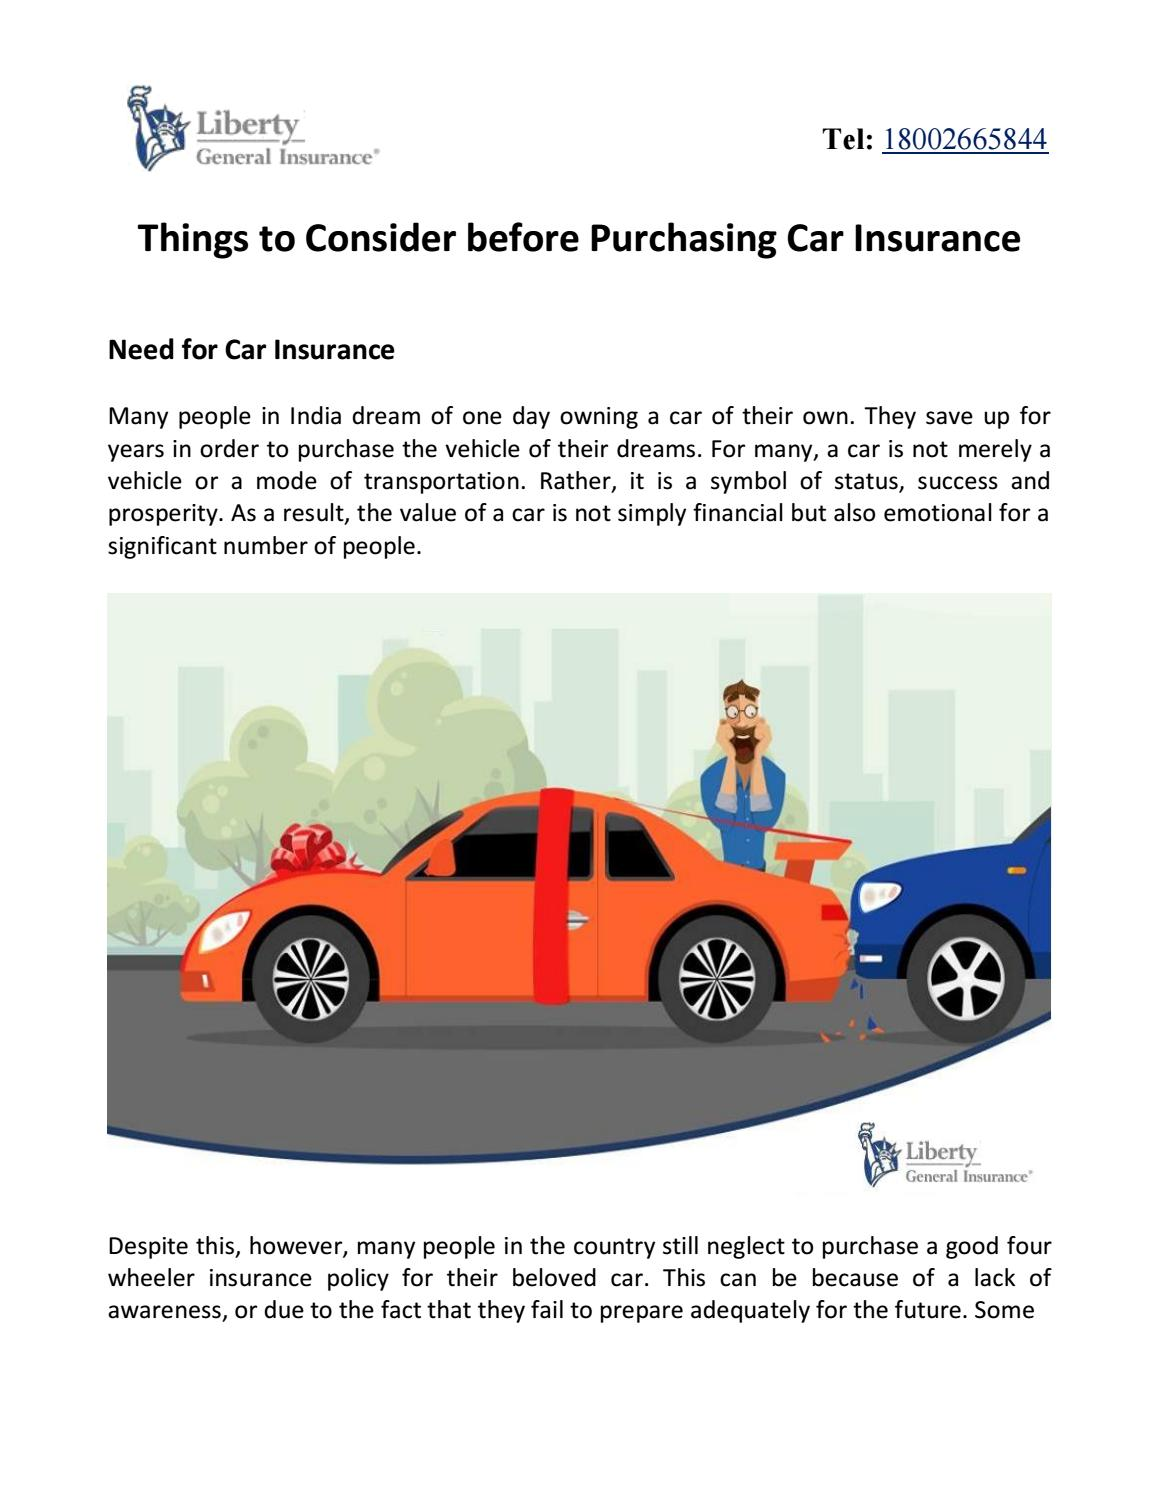 Country Financial Car Insurance >> Things To Consider Before Purchasing Car Insurance By